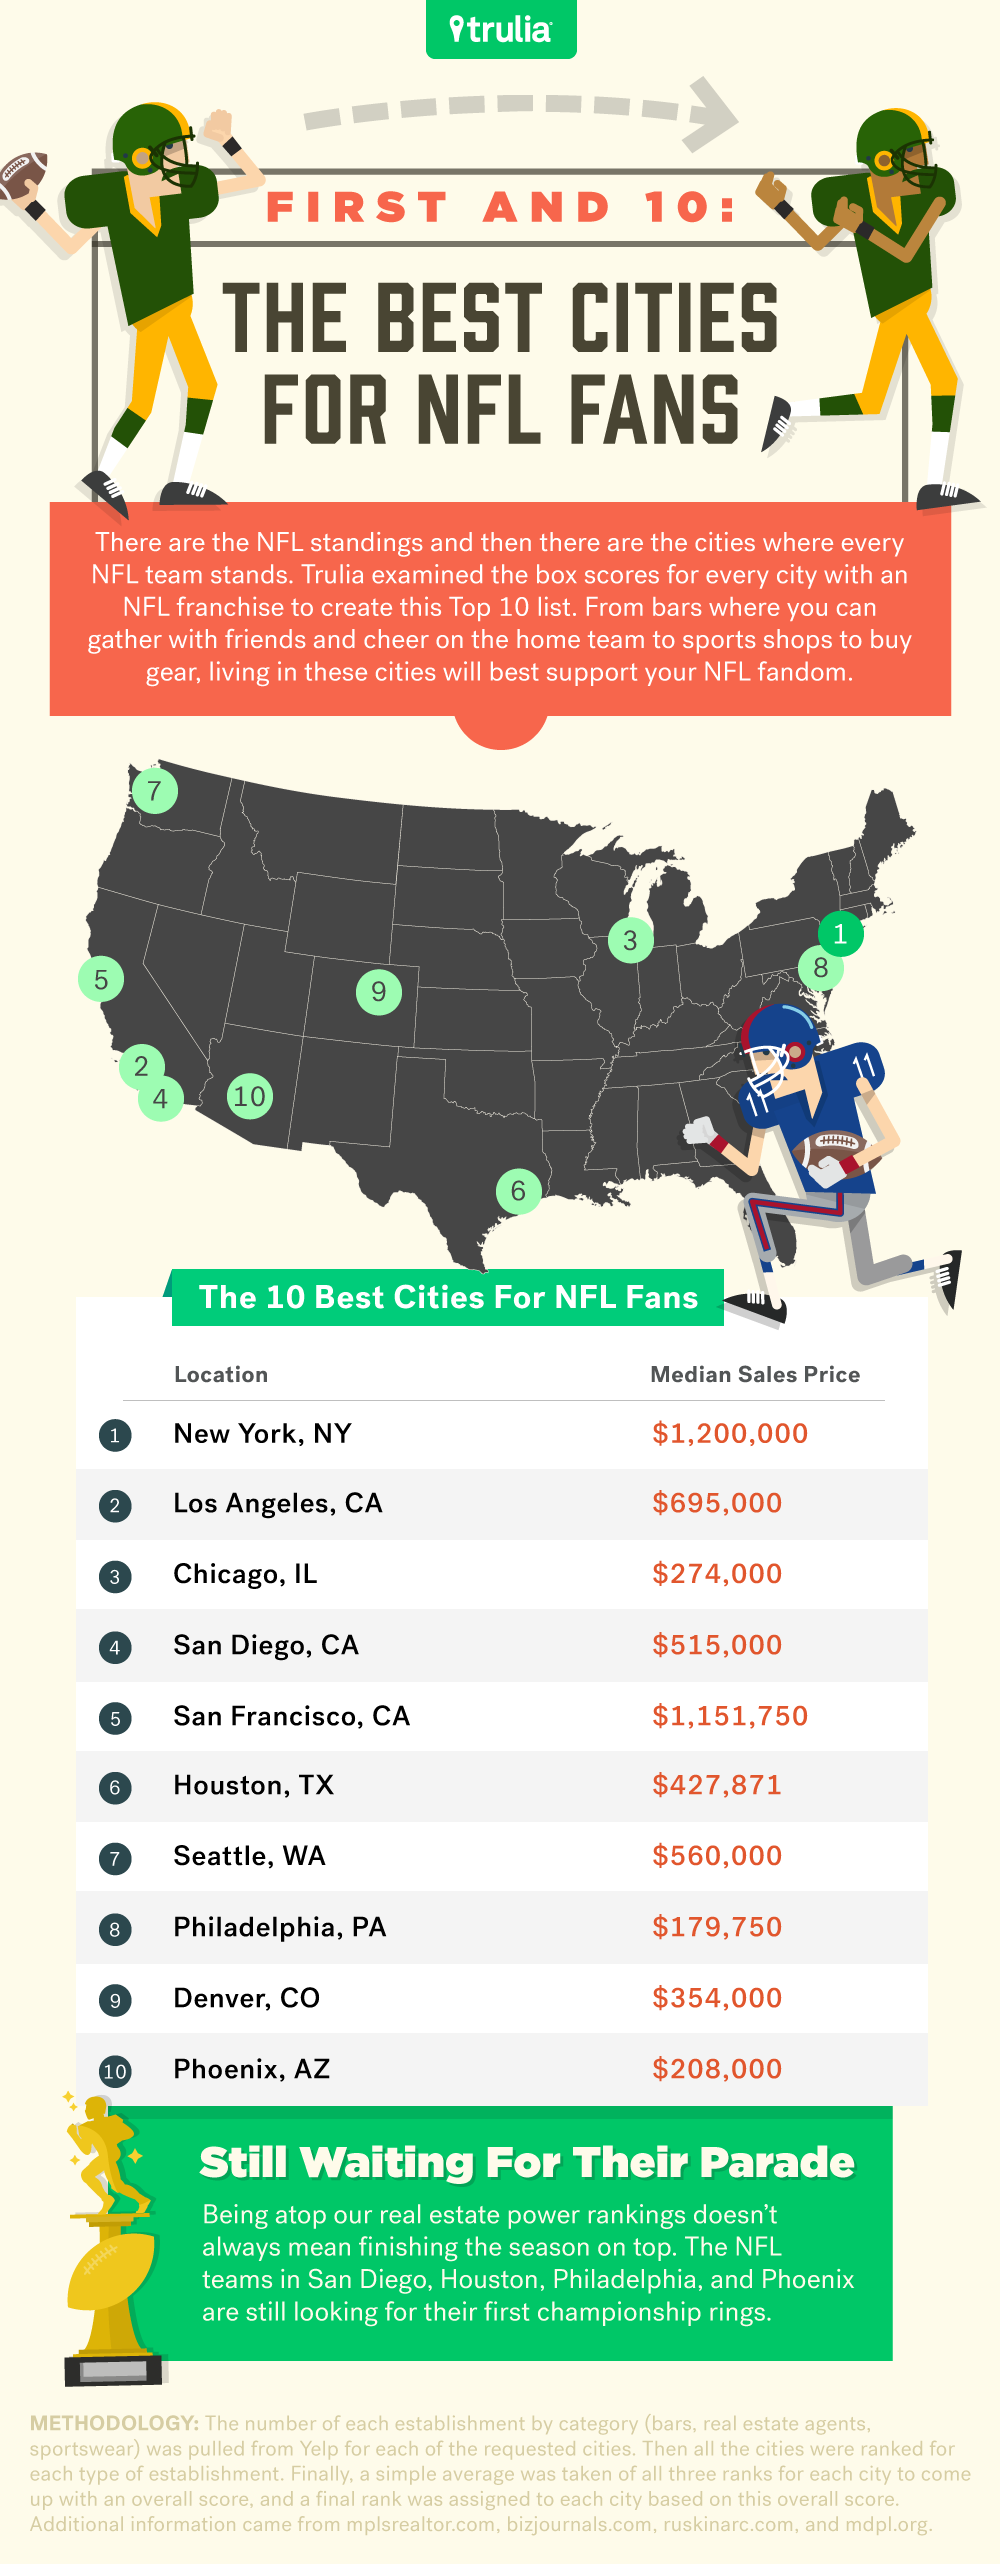 Touchdown-Real-Estate-Power-Rankings-For-NFL-Cities-9-7-section-1